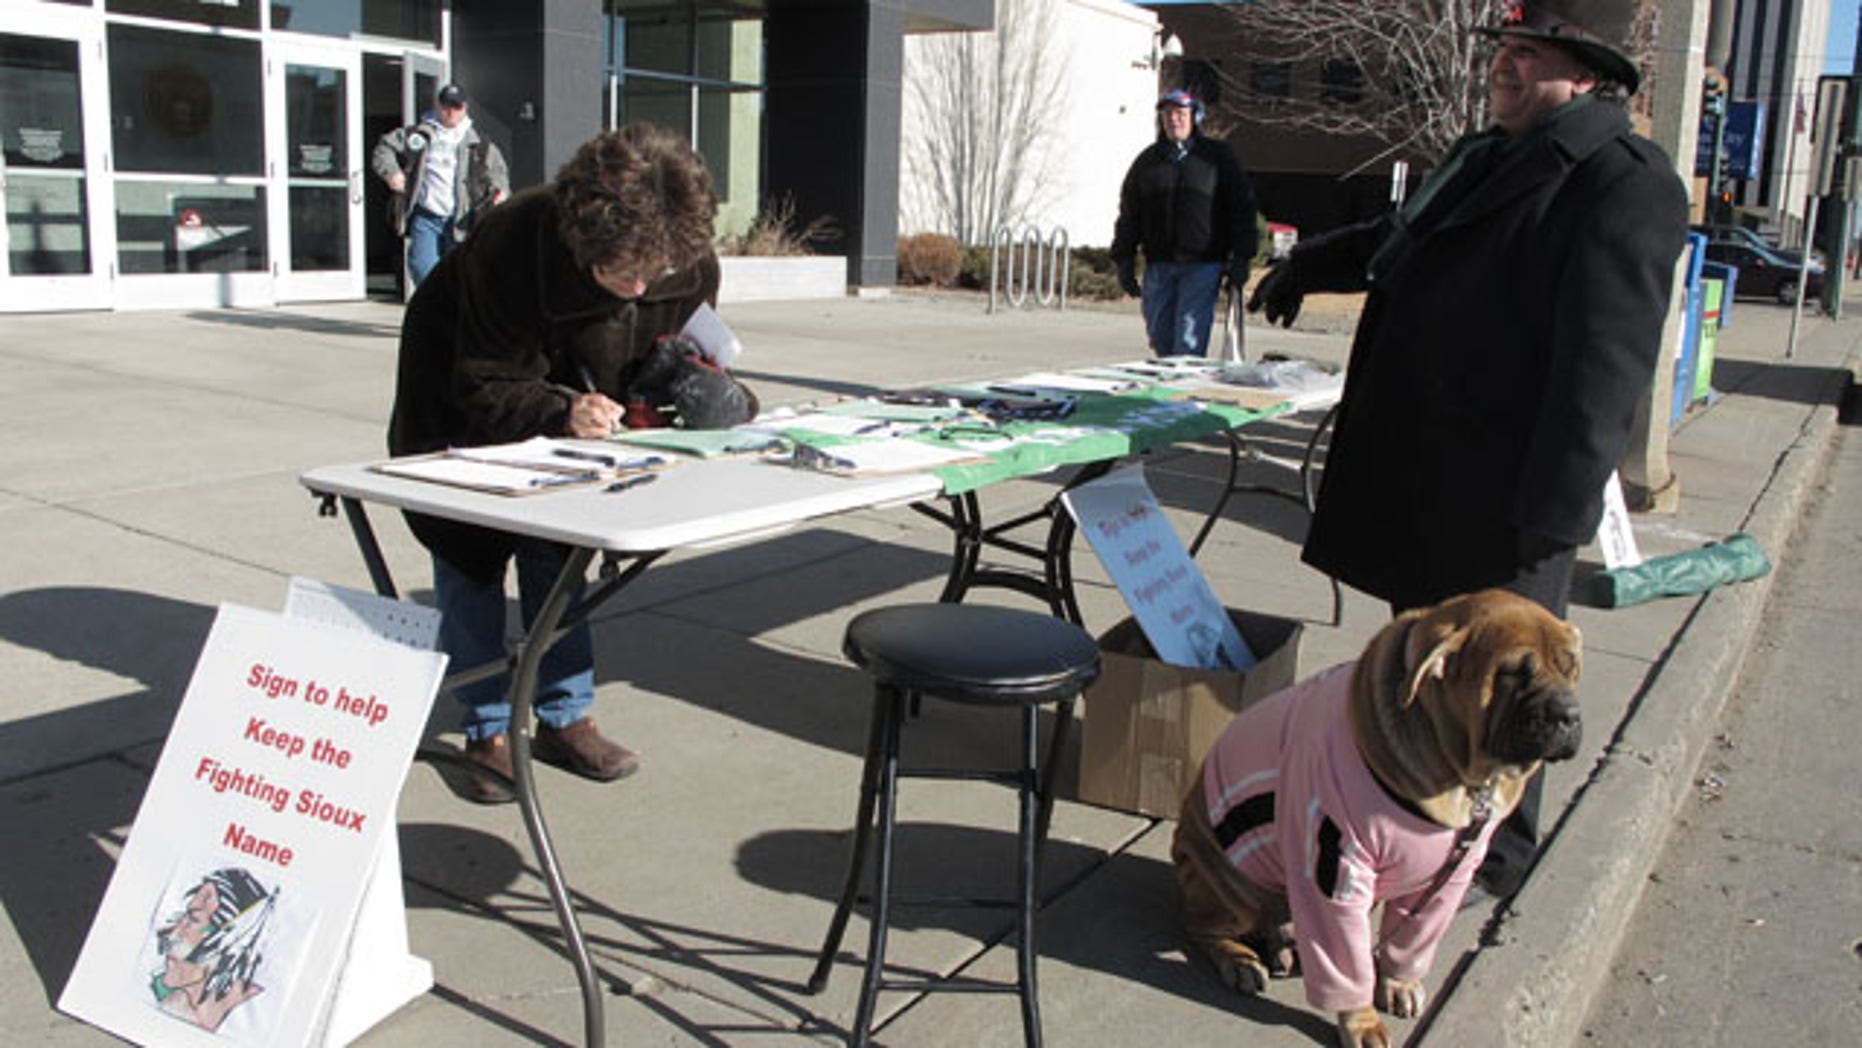 Feb. 7, 2012: Charles Tuttle, a backer of the University of North Dakota's Fighting Sioux nickname, watches as a woman signs petitions supporting the nickname in front of the federal courthouse in Bismarck, N.D.